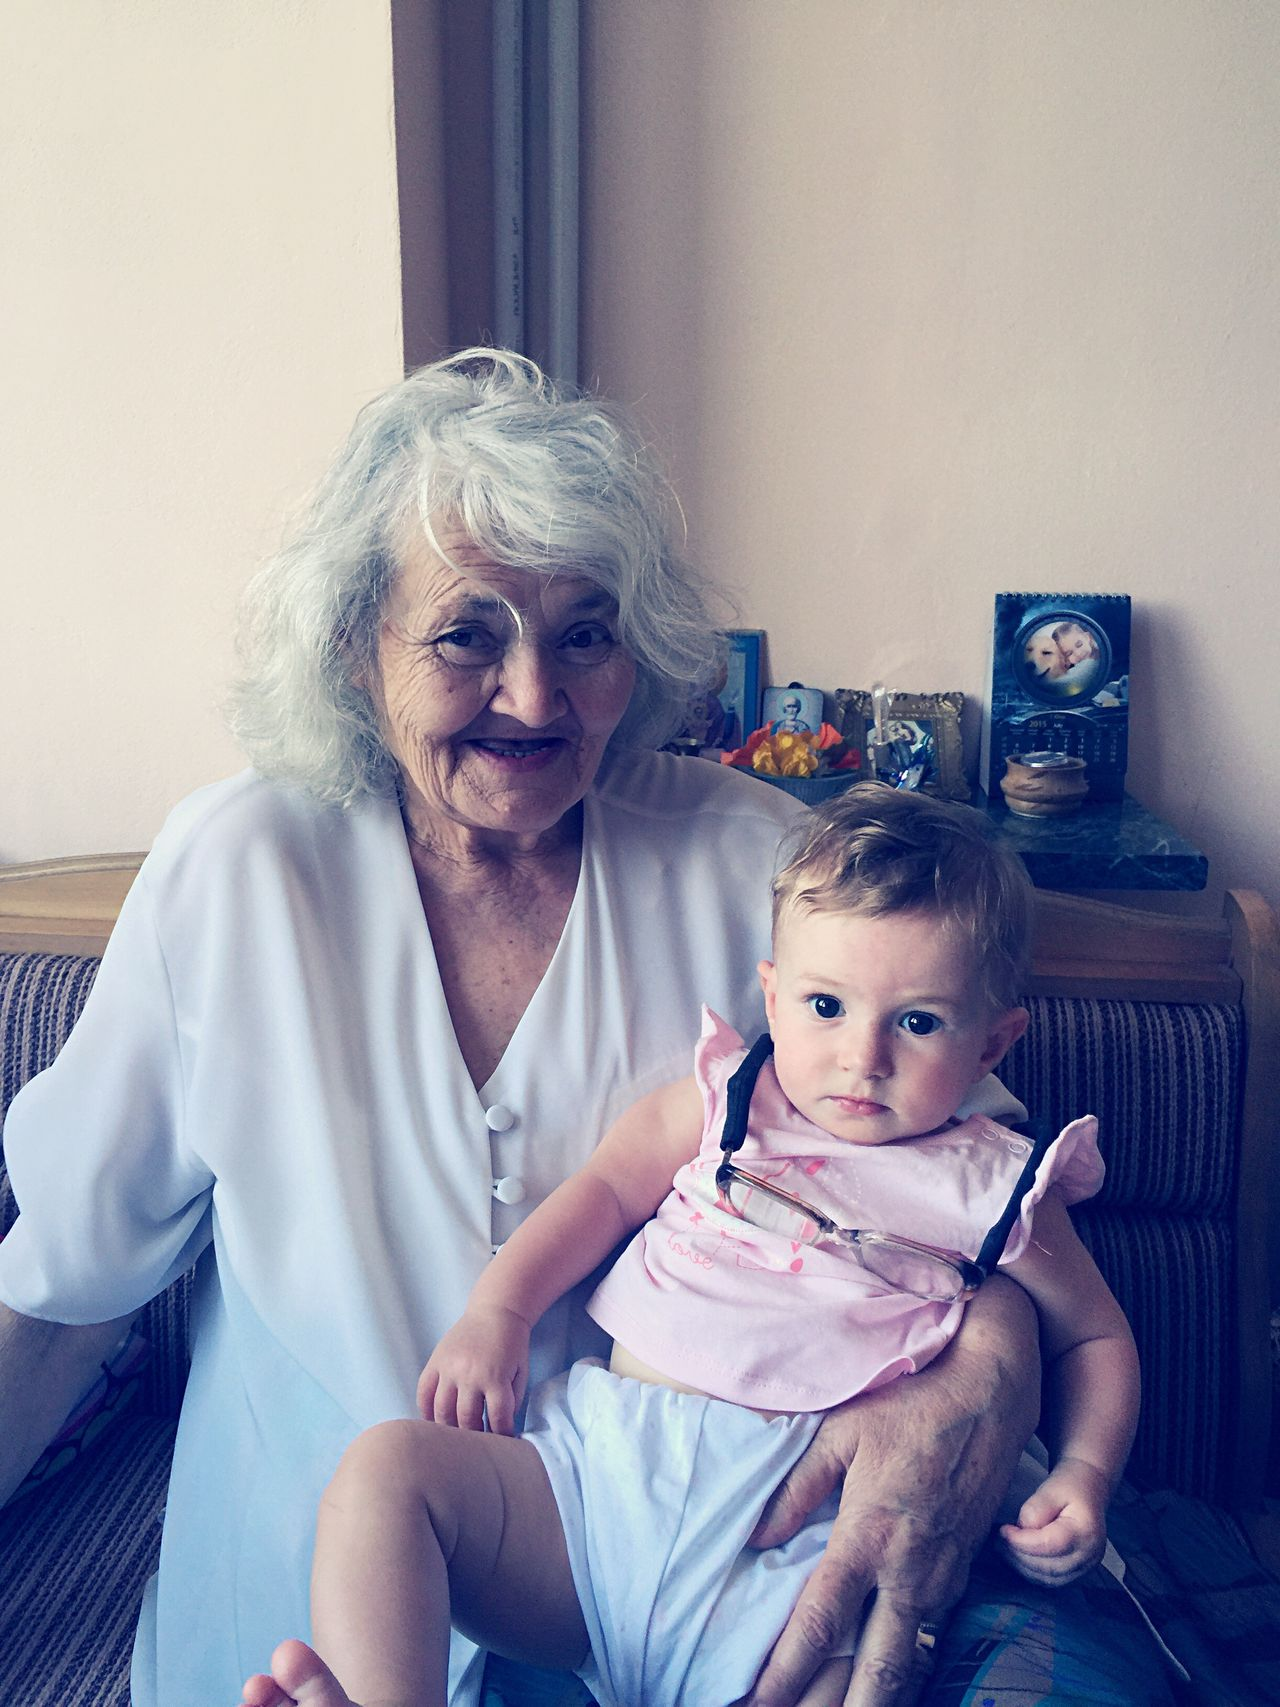 Grandmother and baby Grandmother Grandma Baby Babygirl Family Portrait Portrait Of A Woman Old Old Woman Senior Enjoying Life People Children Photography